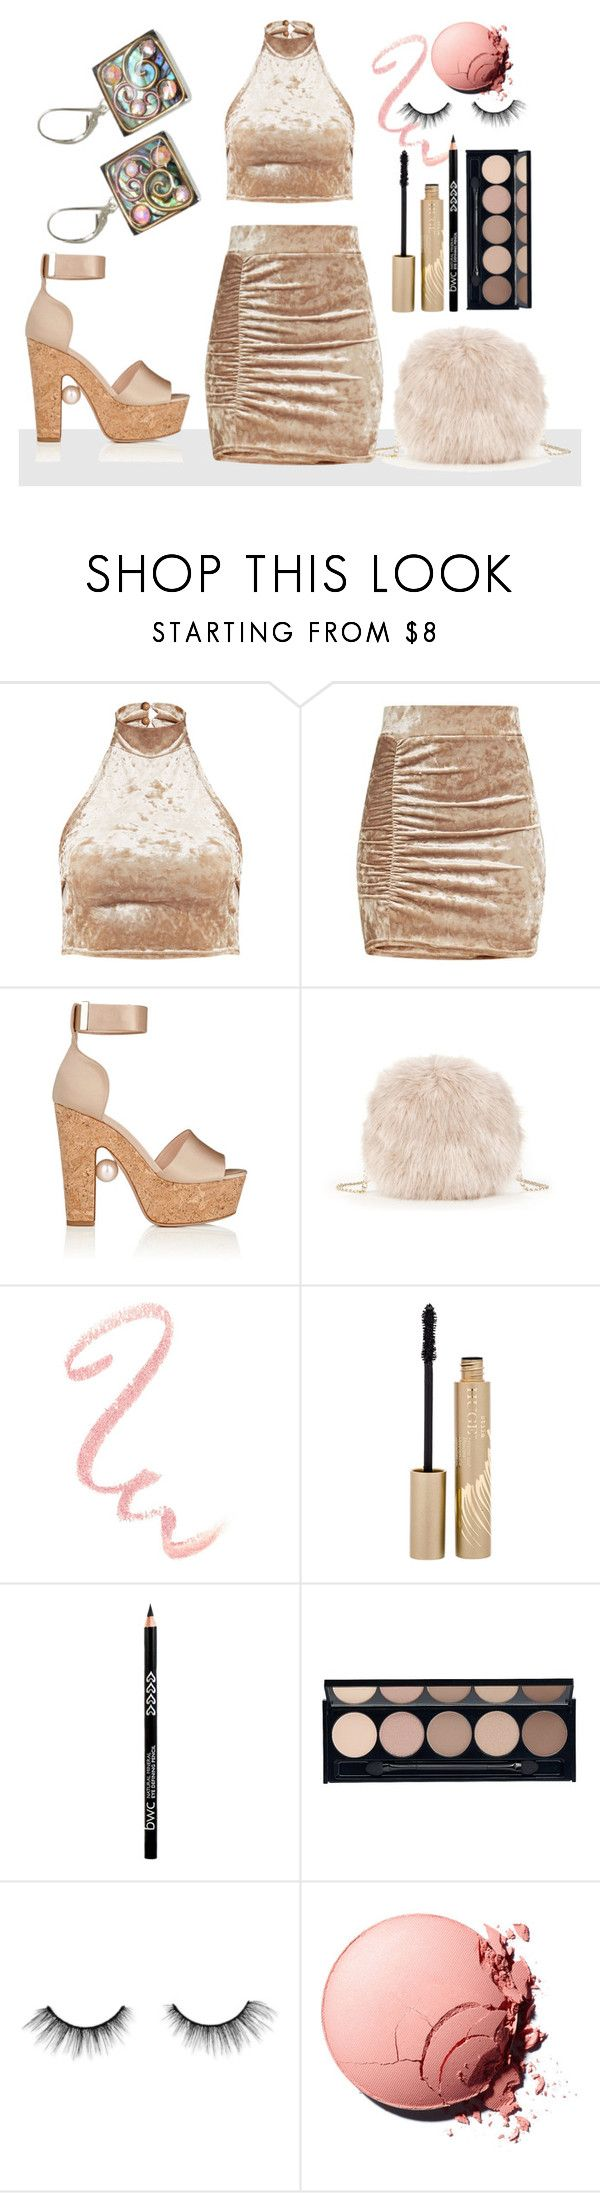 """Club Crush"" by avagoldworks ❤ liked on Polyvore featuring Nicholas Kirkwood, Sole Society, Stila, Witchery, tarte and avagoldworks"